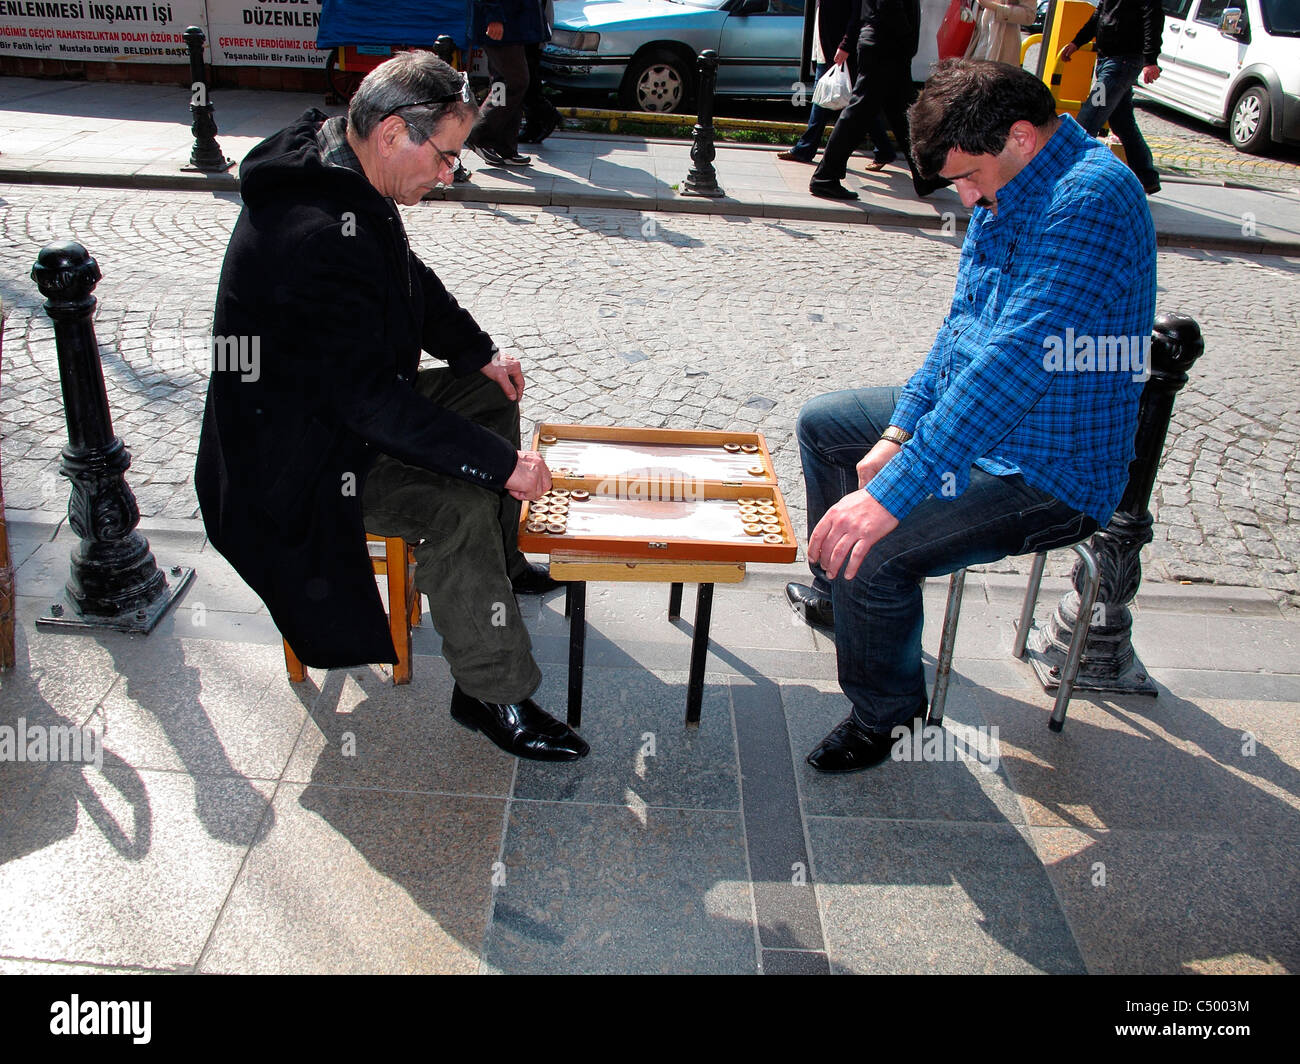 Men Play Backgammon Stock Photos Images Old Town Coffe 2 In1 Isi 15 Turkey Istanbul Sultanahmet Image